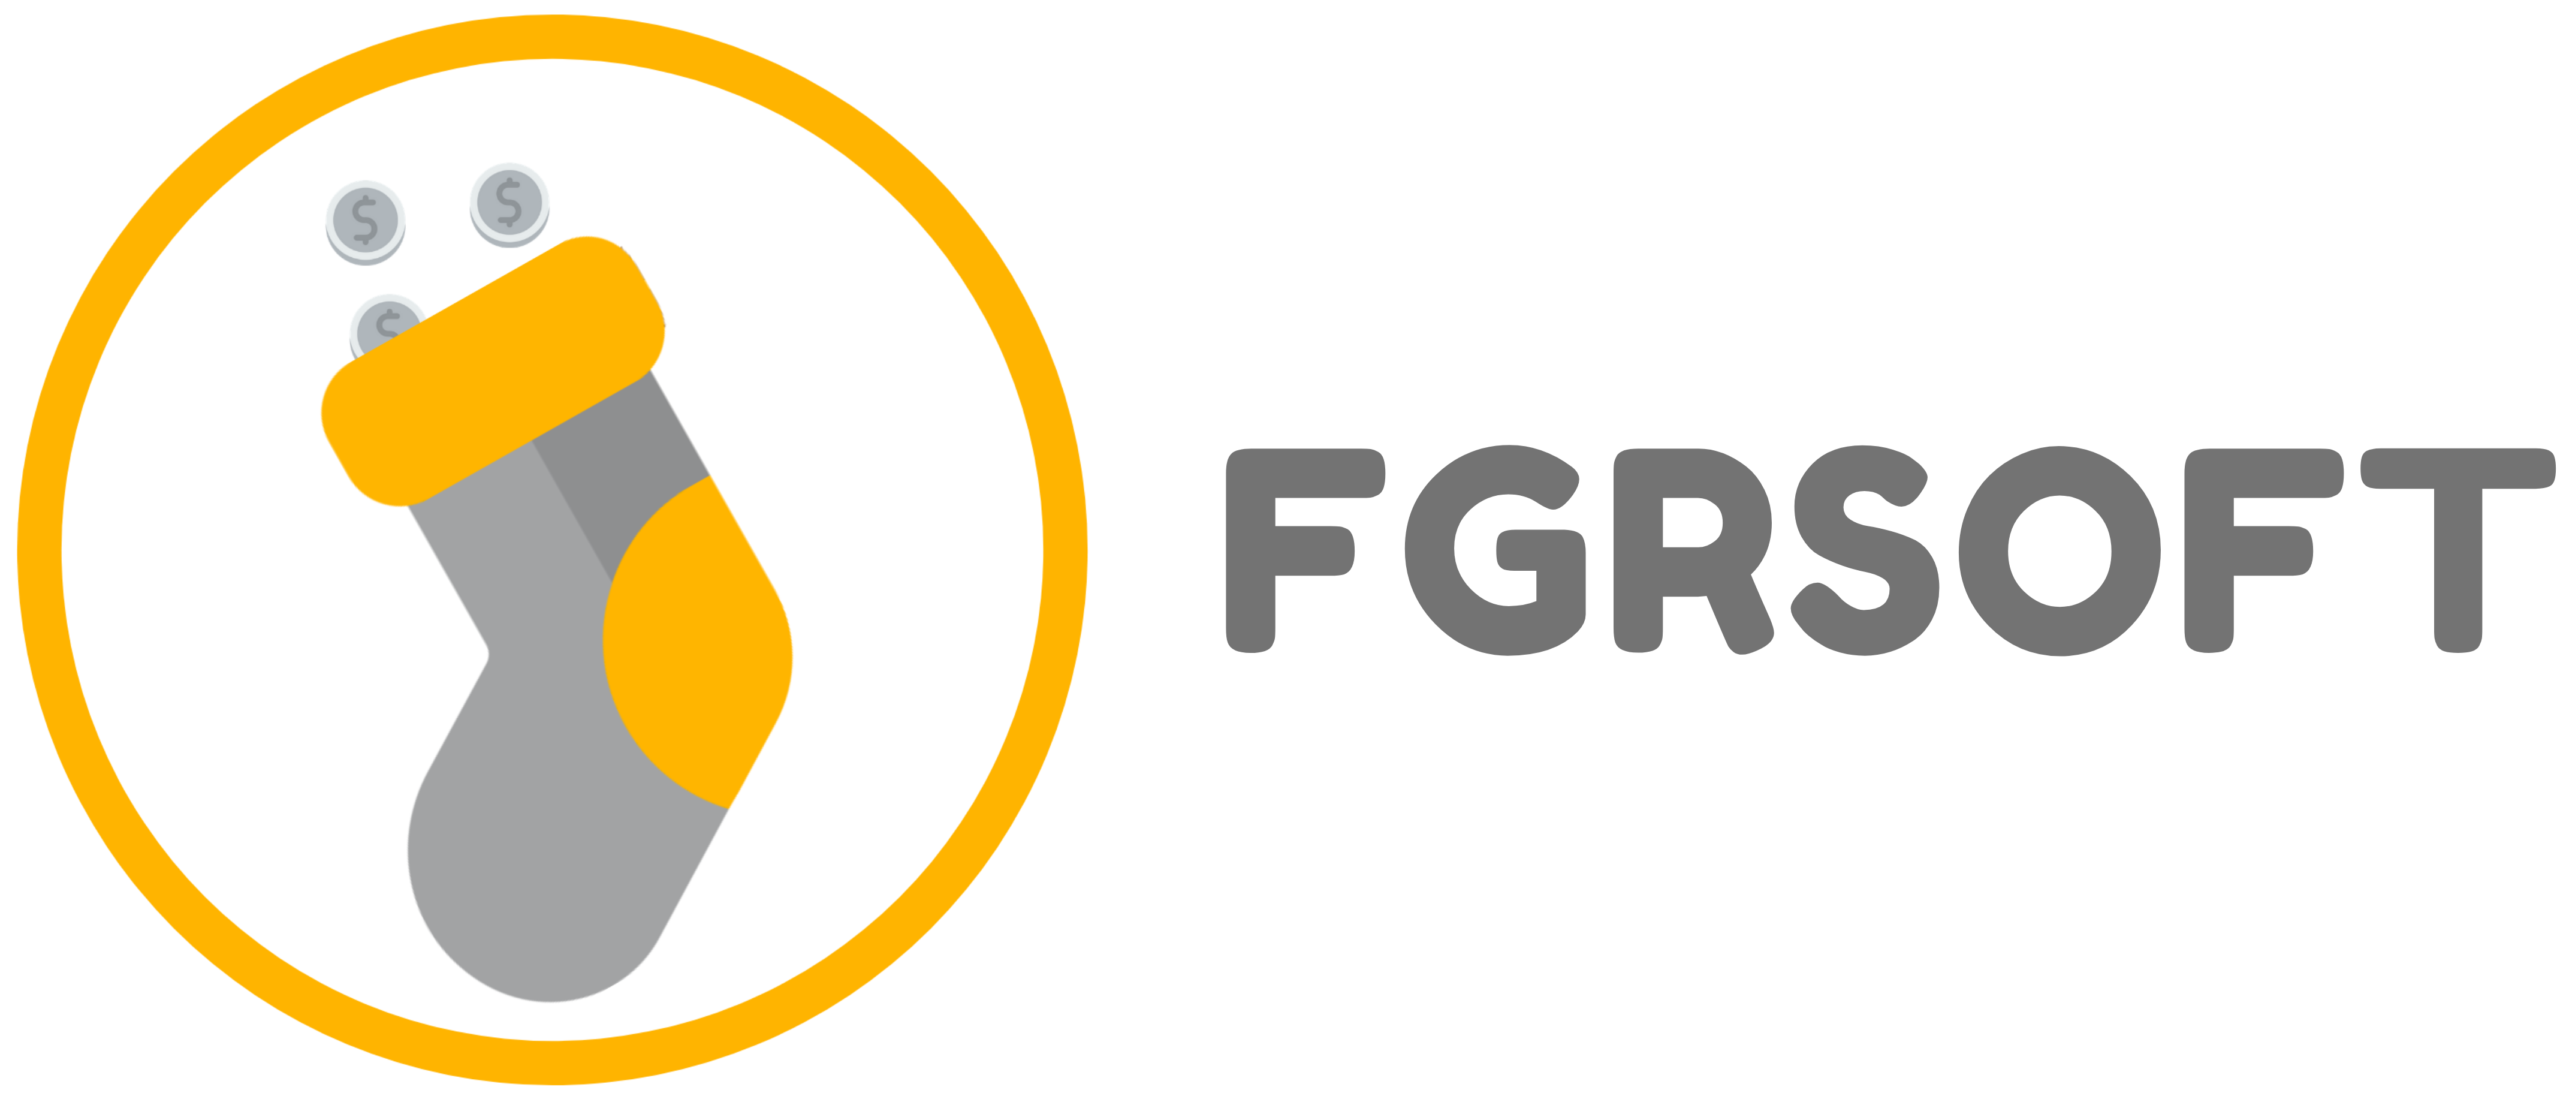 FGRSoft G€stion Privée